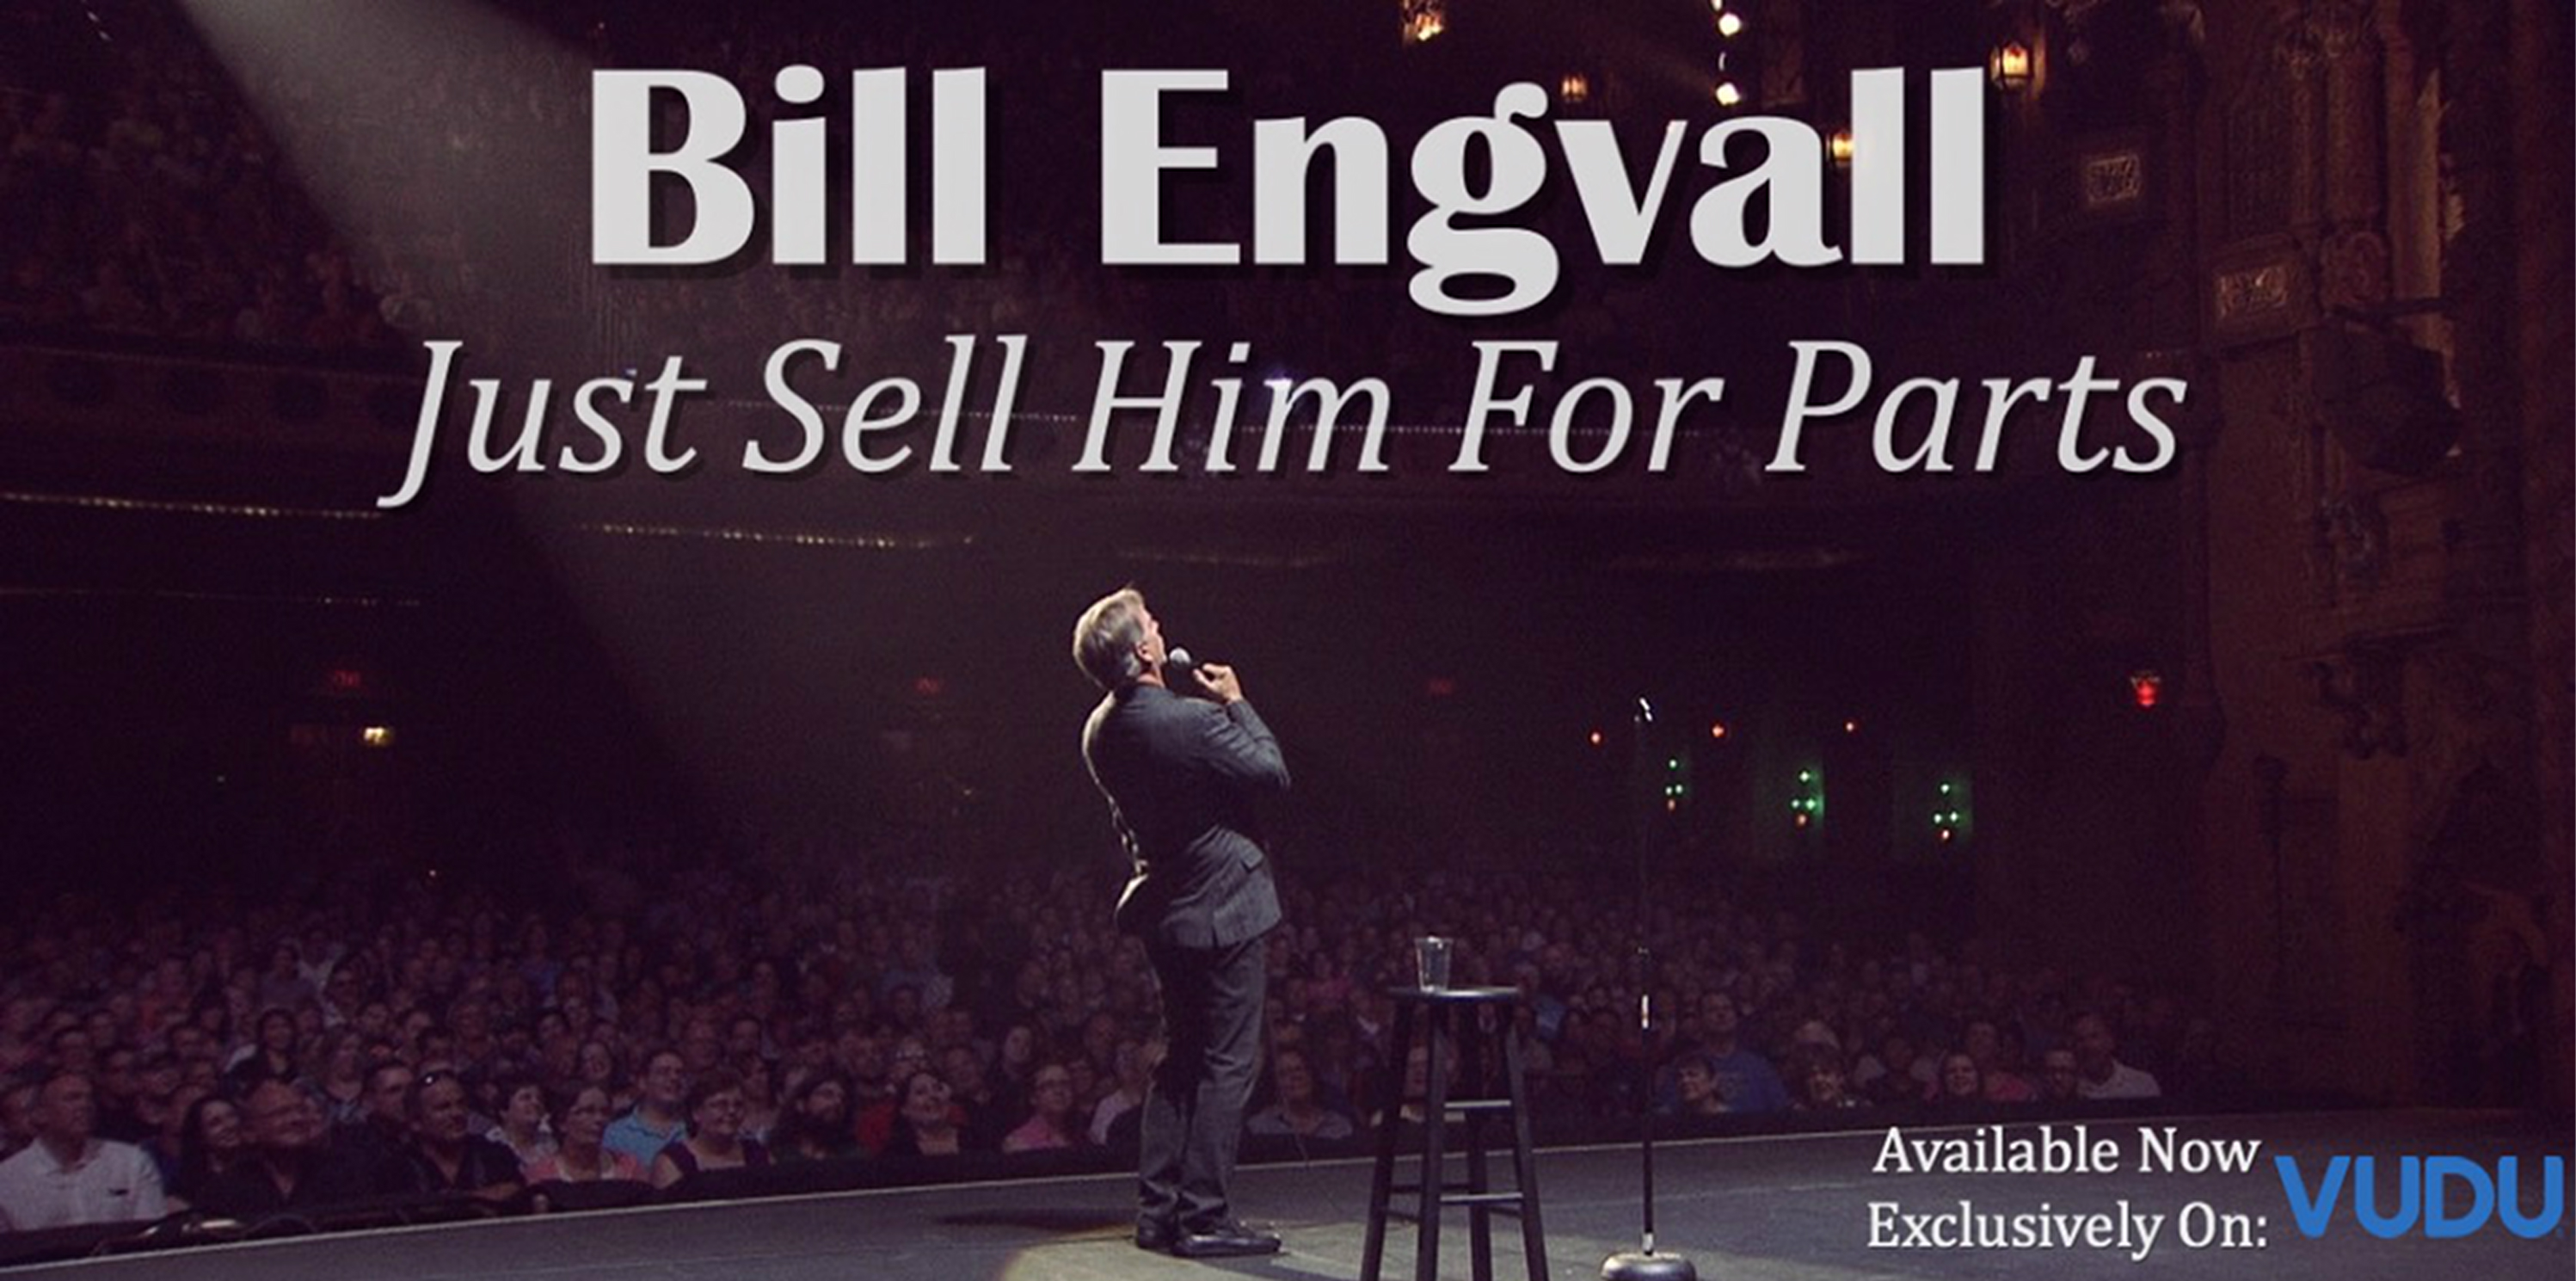 bill-engvall-new-comedy-special-sell-him-for-parts-4